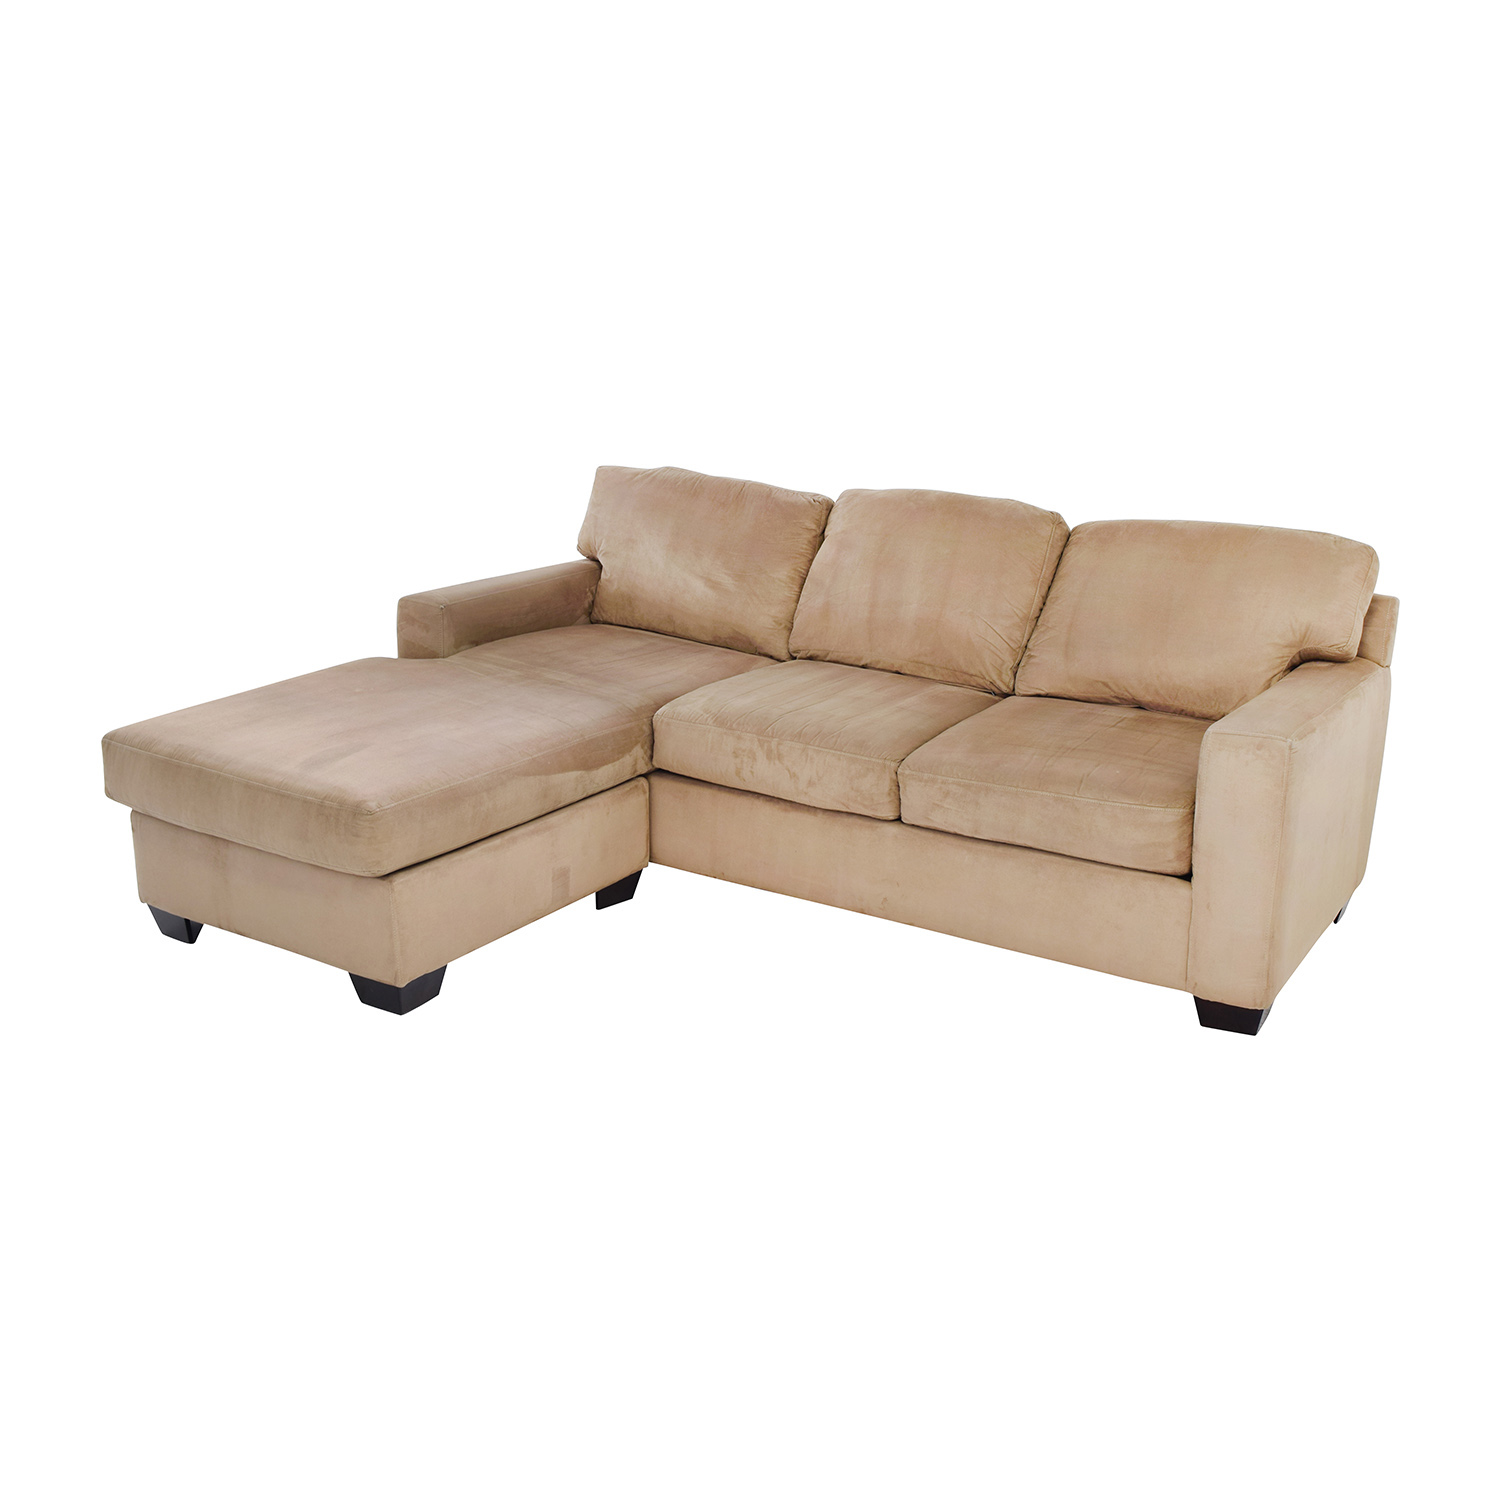 75 Off Max Home Tan Sectional Chaise Sofa Sofas